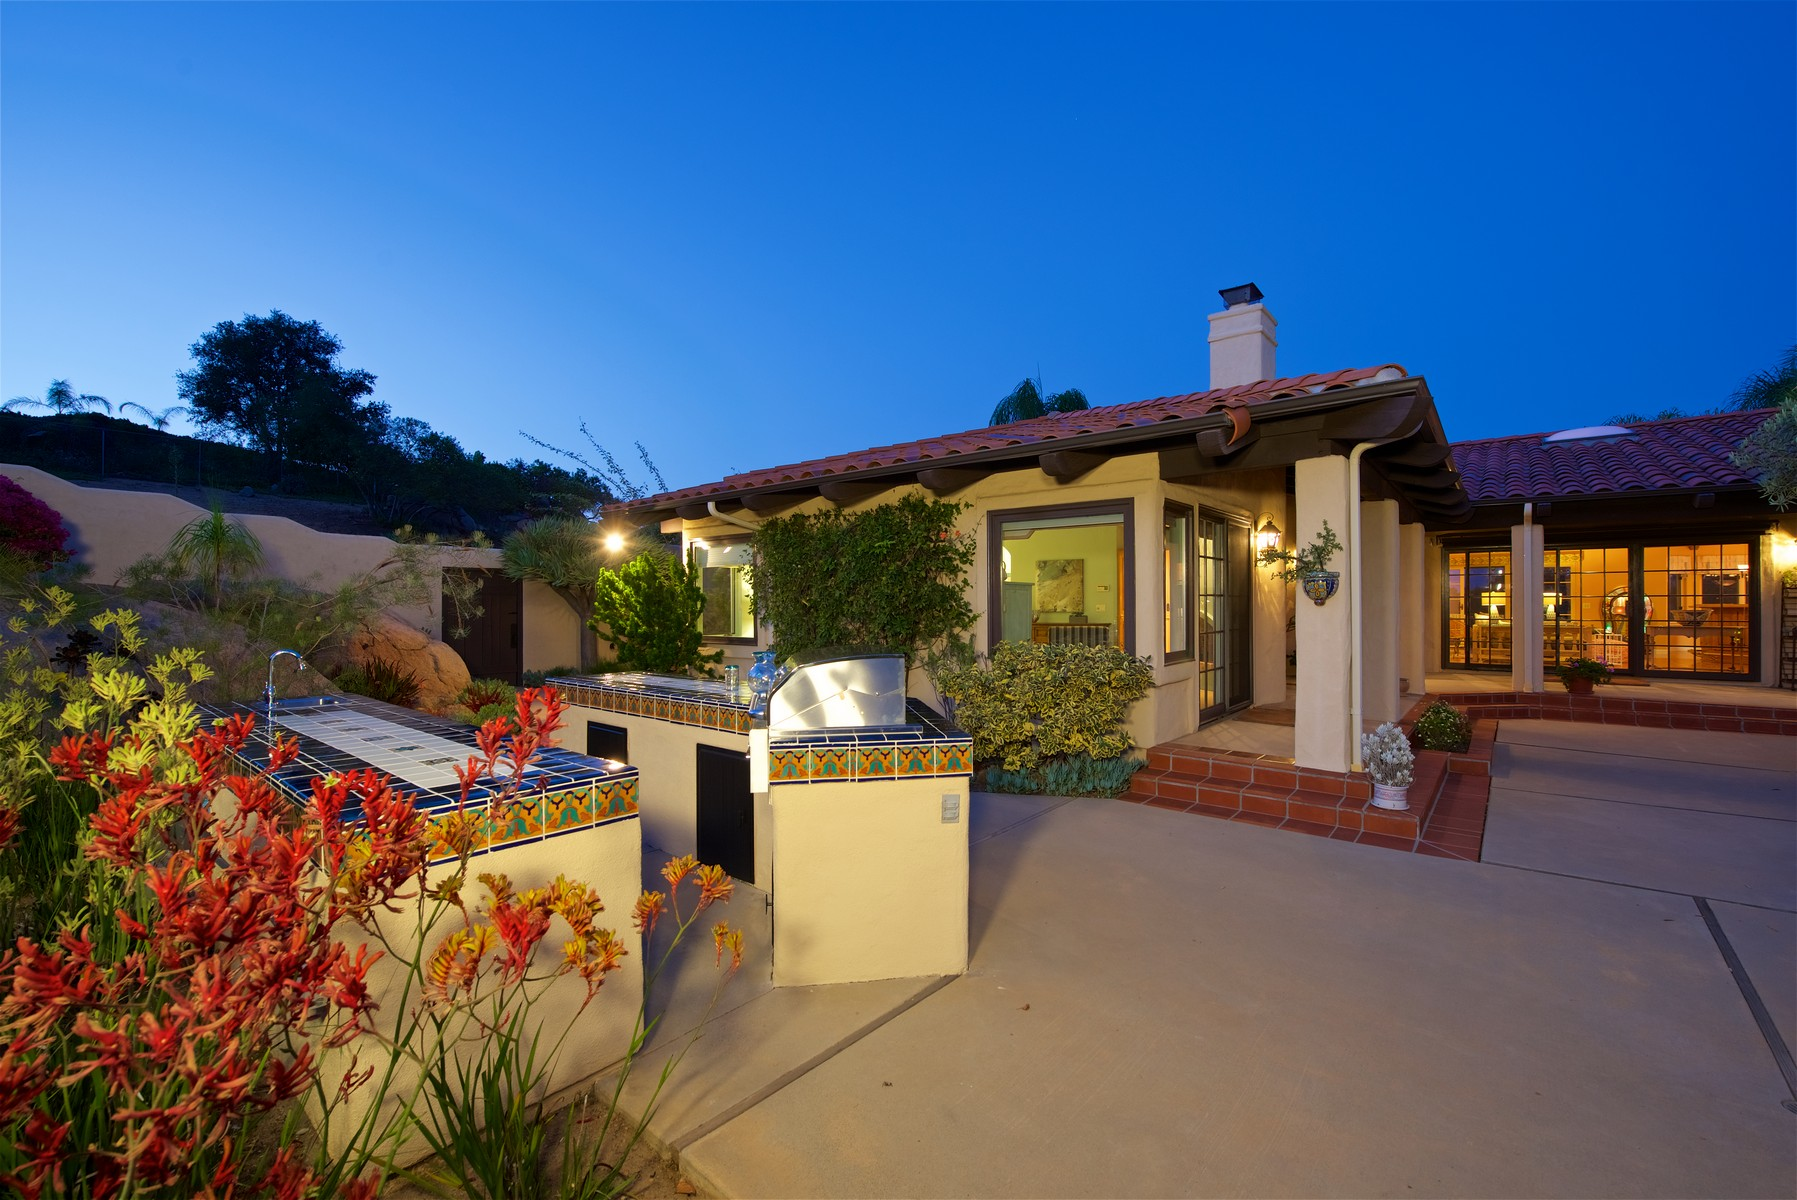 Additional photo for property listing at 28306 Crescent Hill Way  Escondido, Калифорния 92026 Соединенные Штаты